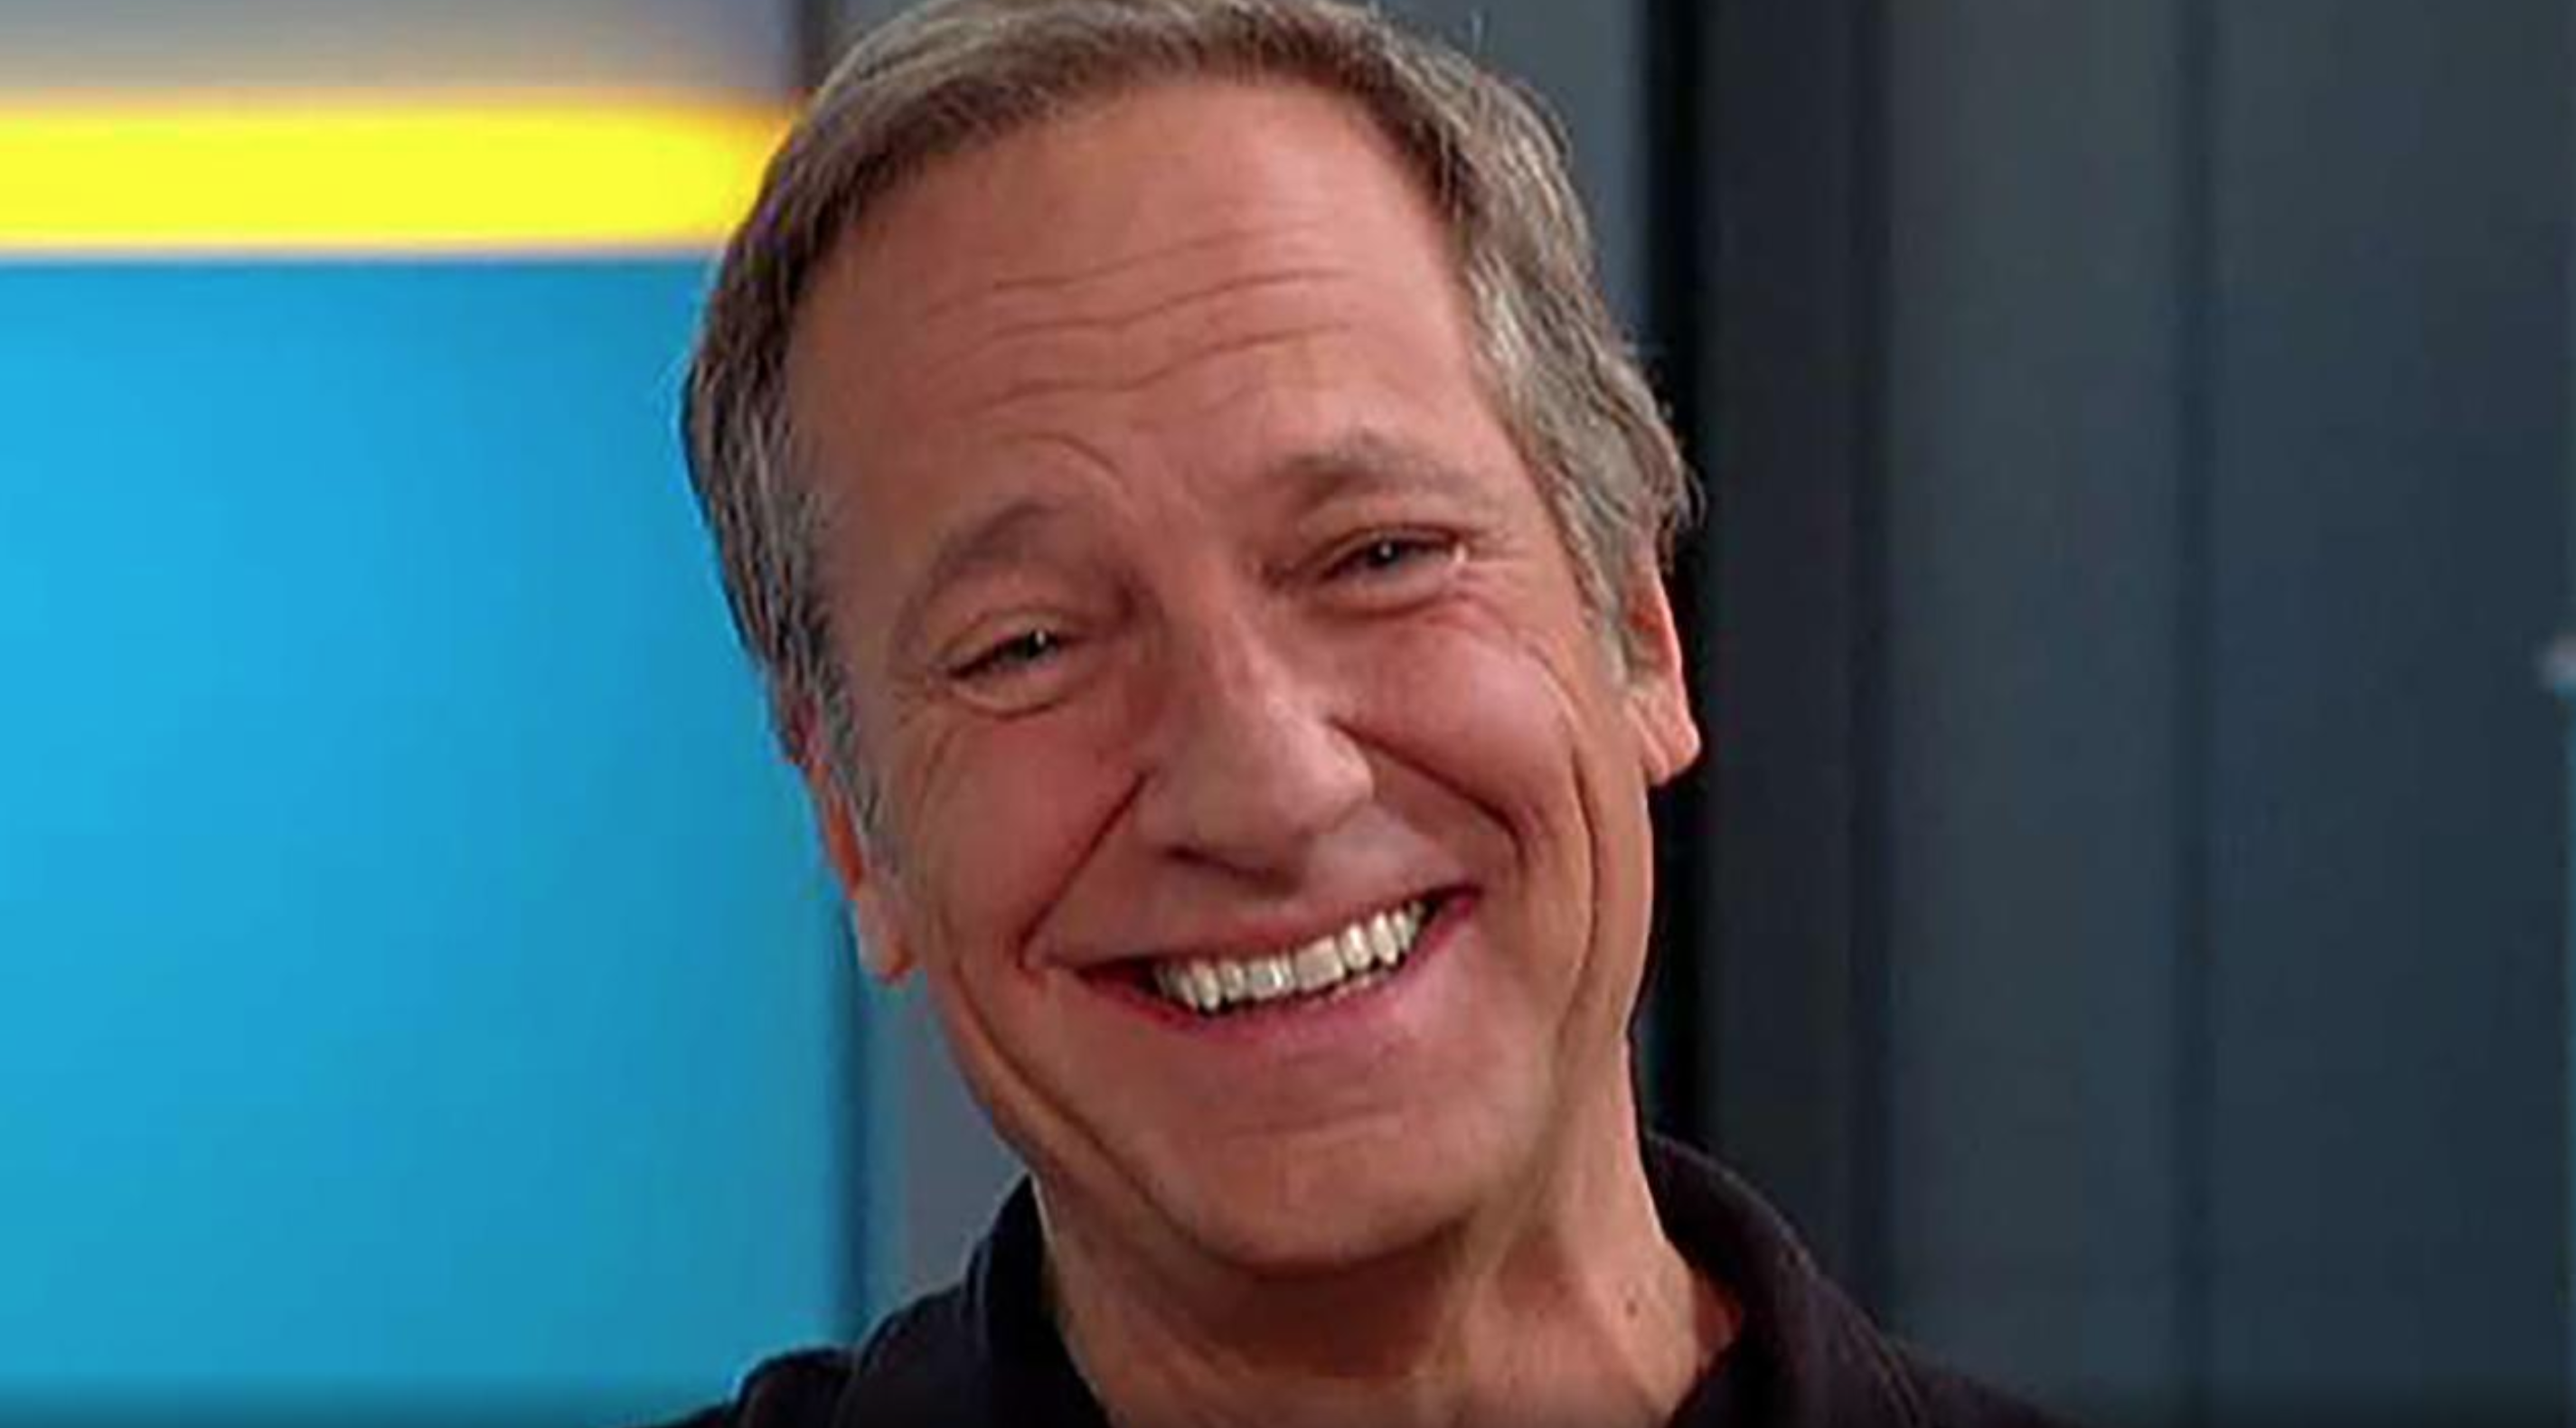 Westlake Legal Group Screen-Shot-2020-01-10-at-9.31.59-AM Mike Rowe reacts to op-ed calling on him to run for governor of California: 'It's flattering' Joshua Nelson fox-news/shows/fox-friends fox-news/media/fox-news-flash fox news fnc/media fnc article 24e83ddf-e01d-5233-919d-6369720c8e6f